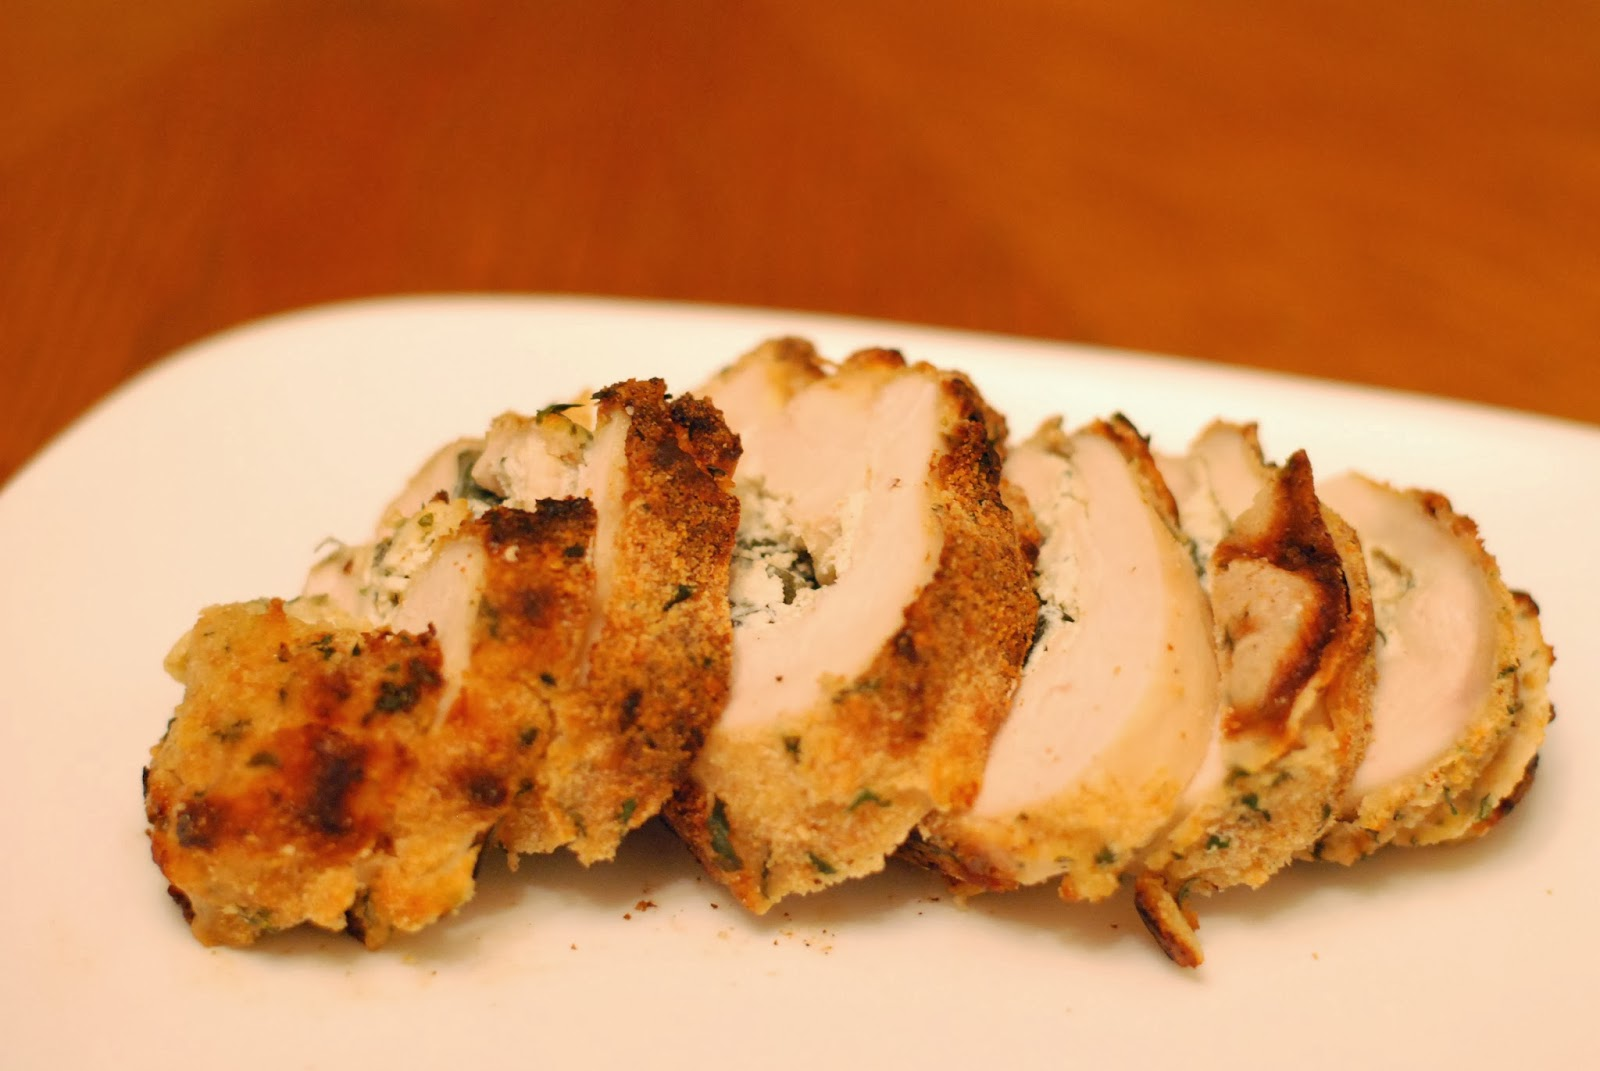 Roasted Garlic and Cream Cheese Stuffed Chicken - Aunt Bee's Recipes